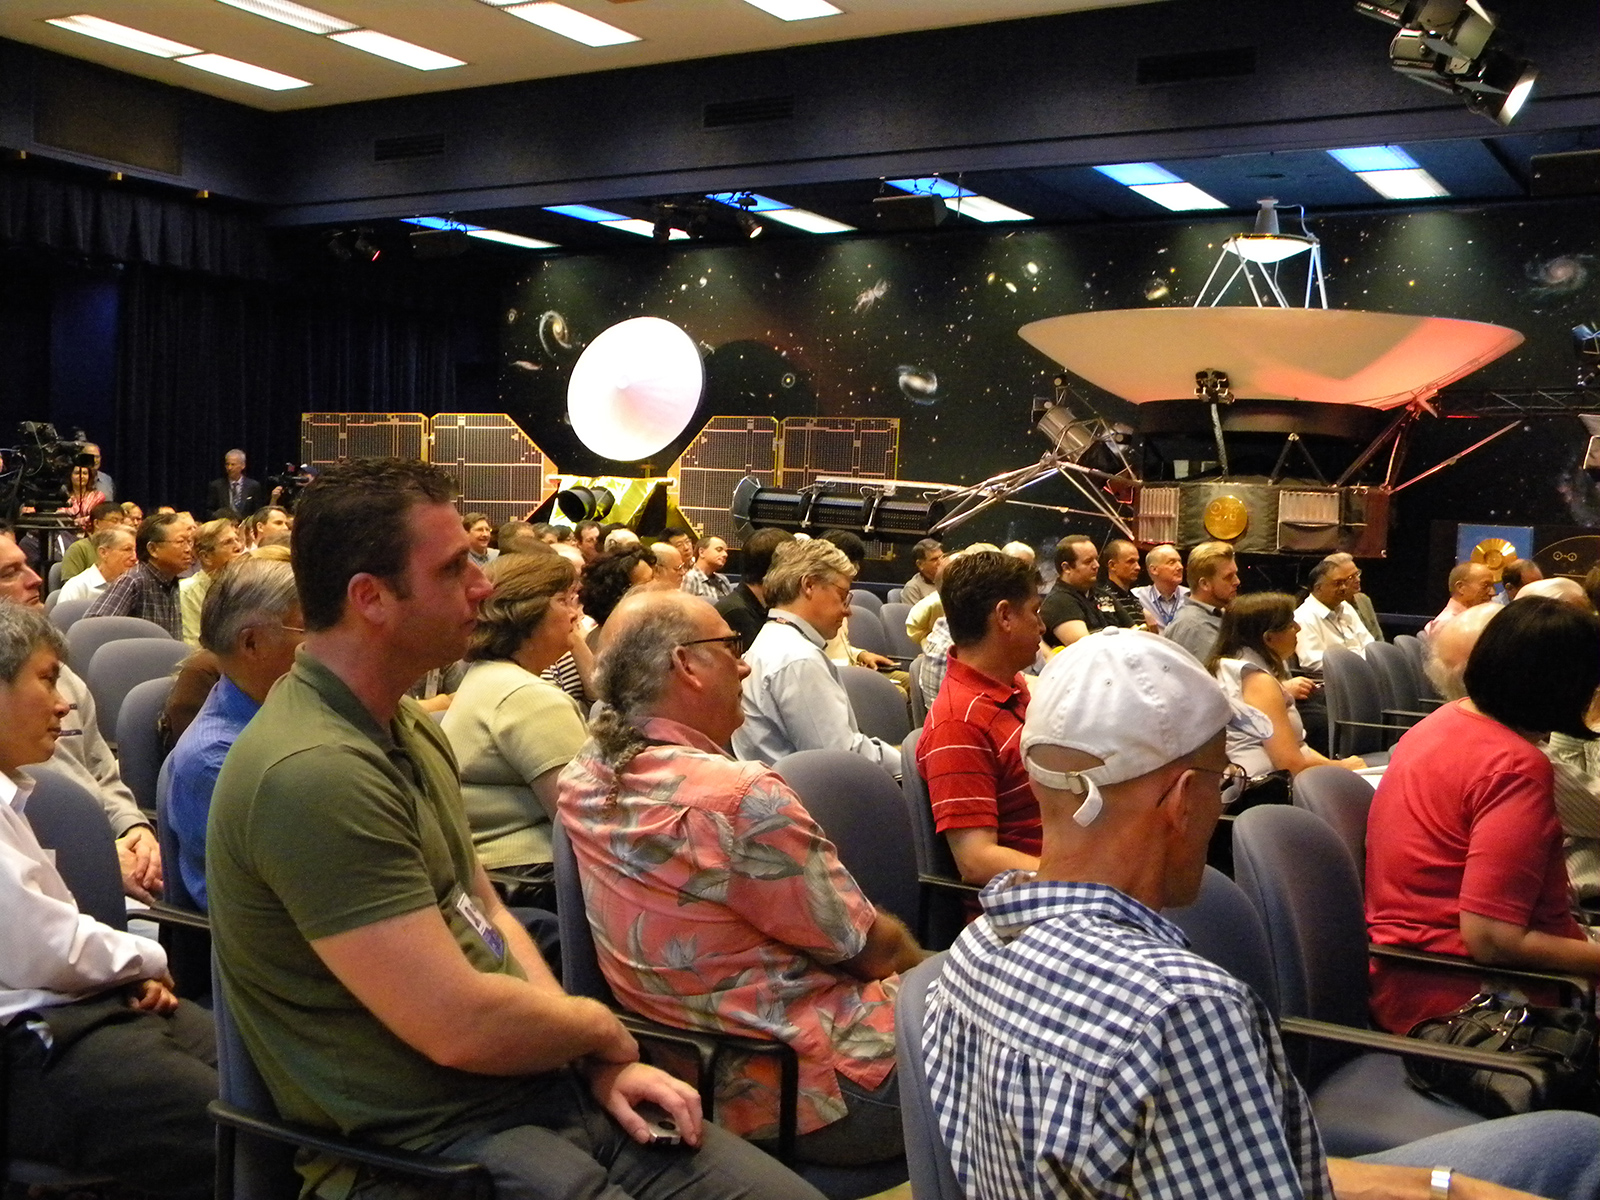 As part of a celebration of 35 years of flight for NASA's Voyager spacecraft, a crowd of engineers and scientists at NASA's Jet Propulsion Laboratory in Pasadena, Calif., gather at von Karman auditorium to listen to insider stories about Voyager. At the top right of the picture is a full-size model of Voyager. Image credit: NASA/JPL-Caltech